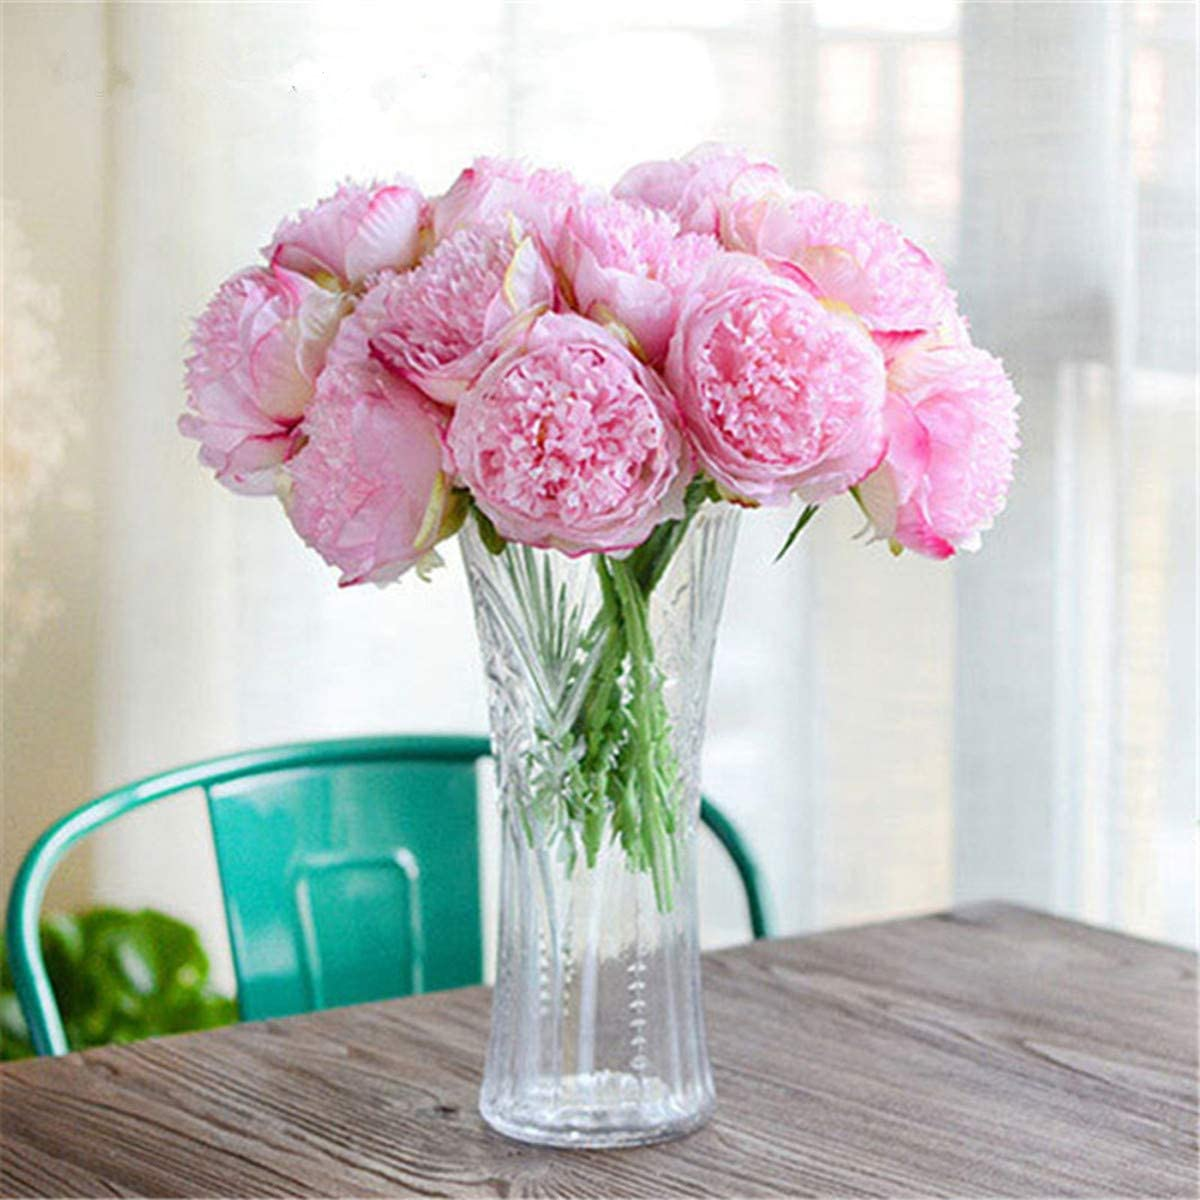 Dwe 5 Head Artificial Flower Fake Silk Peony Bridal Bouquet Christmas Wedding Party Home Decorative Deep Pink Amazon Co Uk Kitchen Home